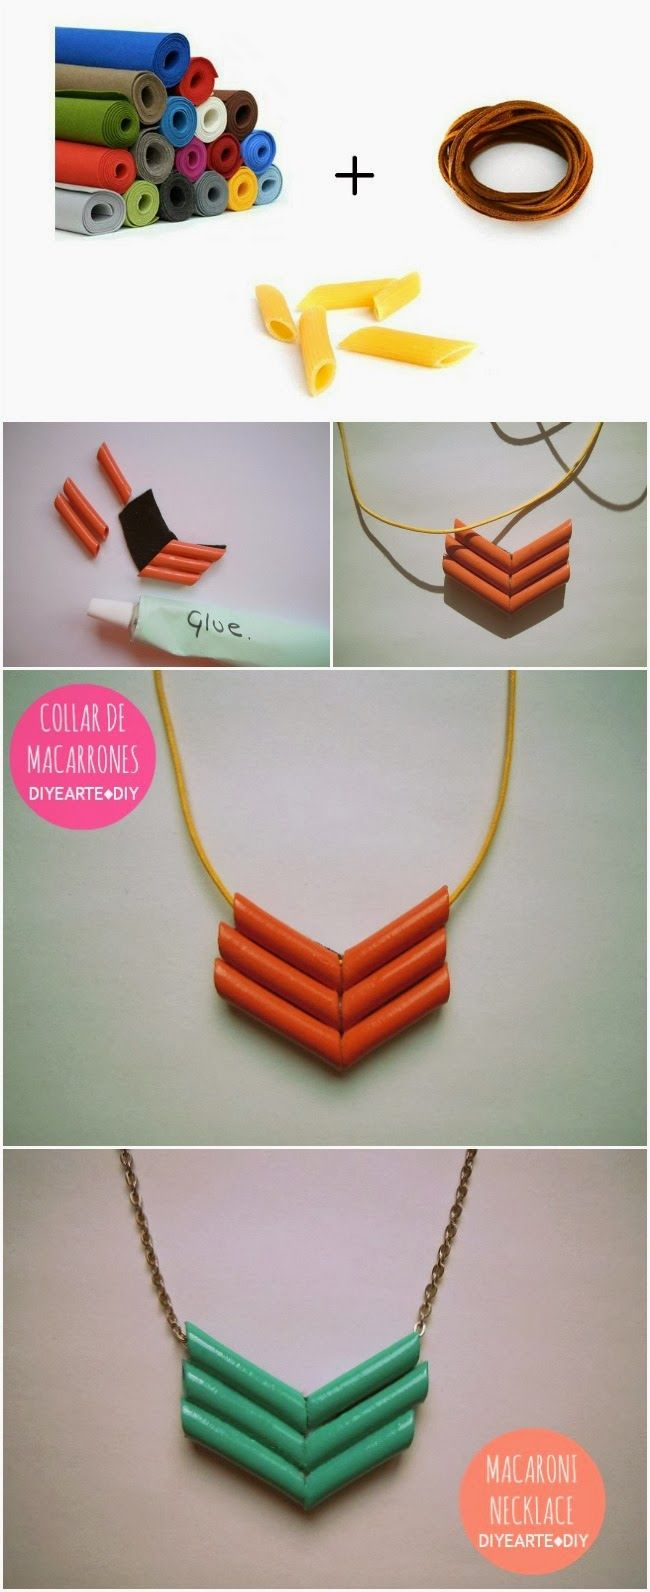 COLLAR DE MACARRONES | MACARONI NECKLACE DIY